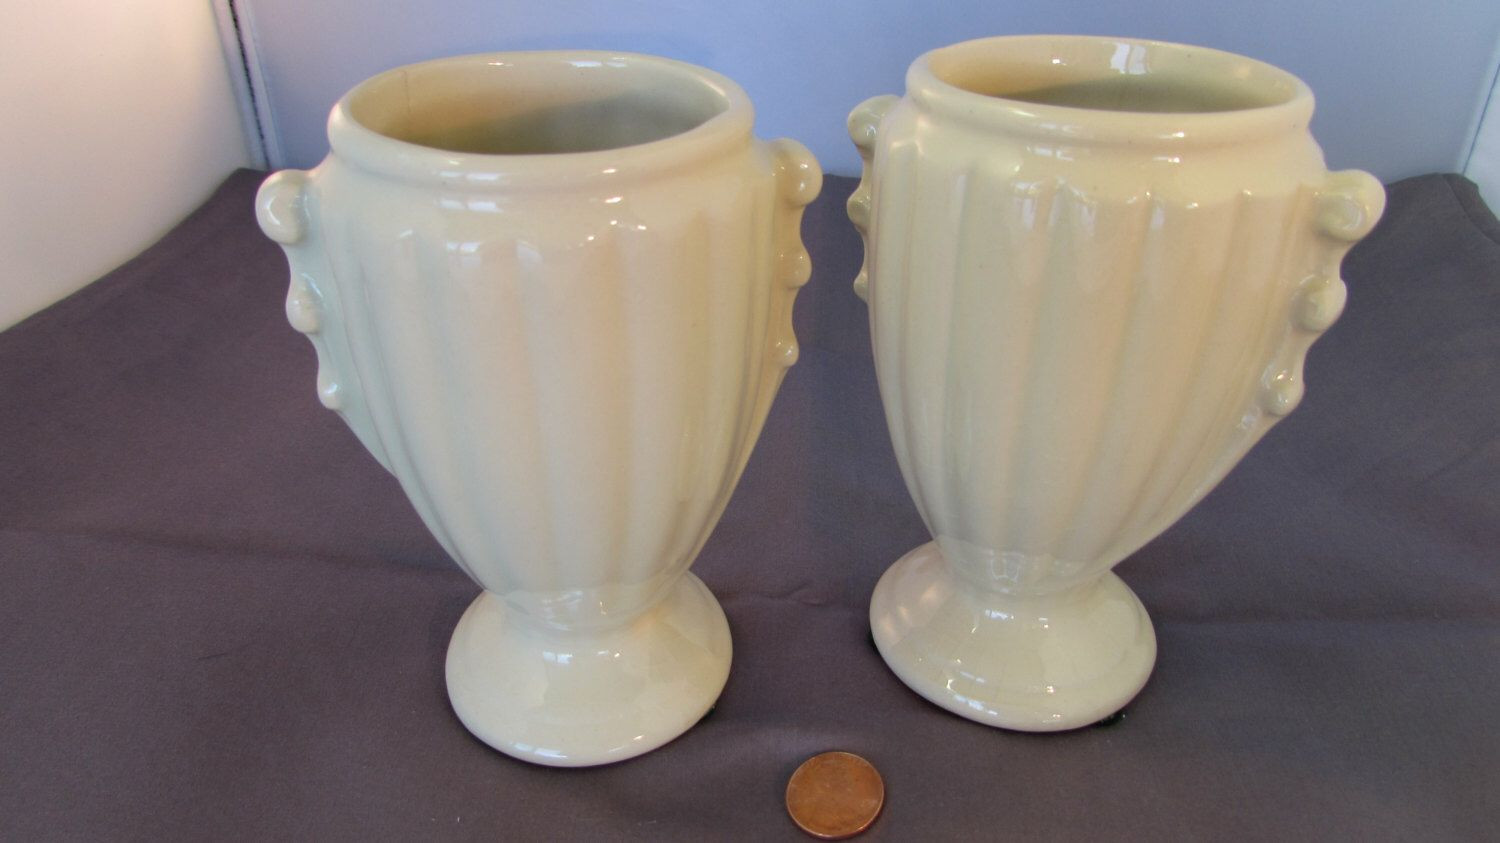 Mccoy Green Vase Value Of Vintage Classic Ivory White Greek Mccoy Vase Two Available C by Intended for Vintage Classic Ivory White Greek Mccoy Vase Two Available C by Mccoypotterylovers On